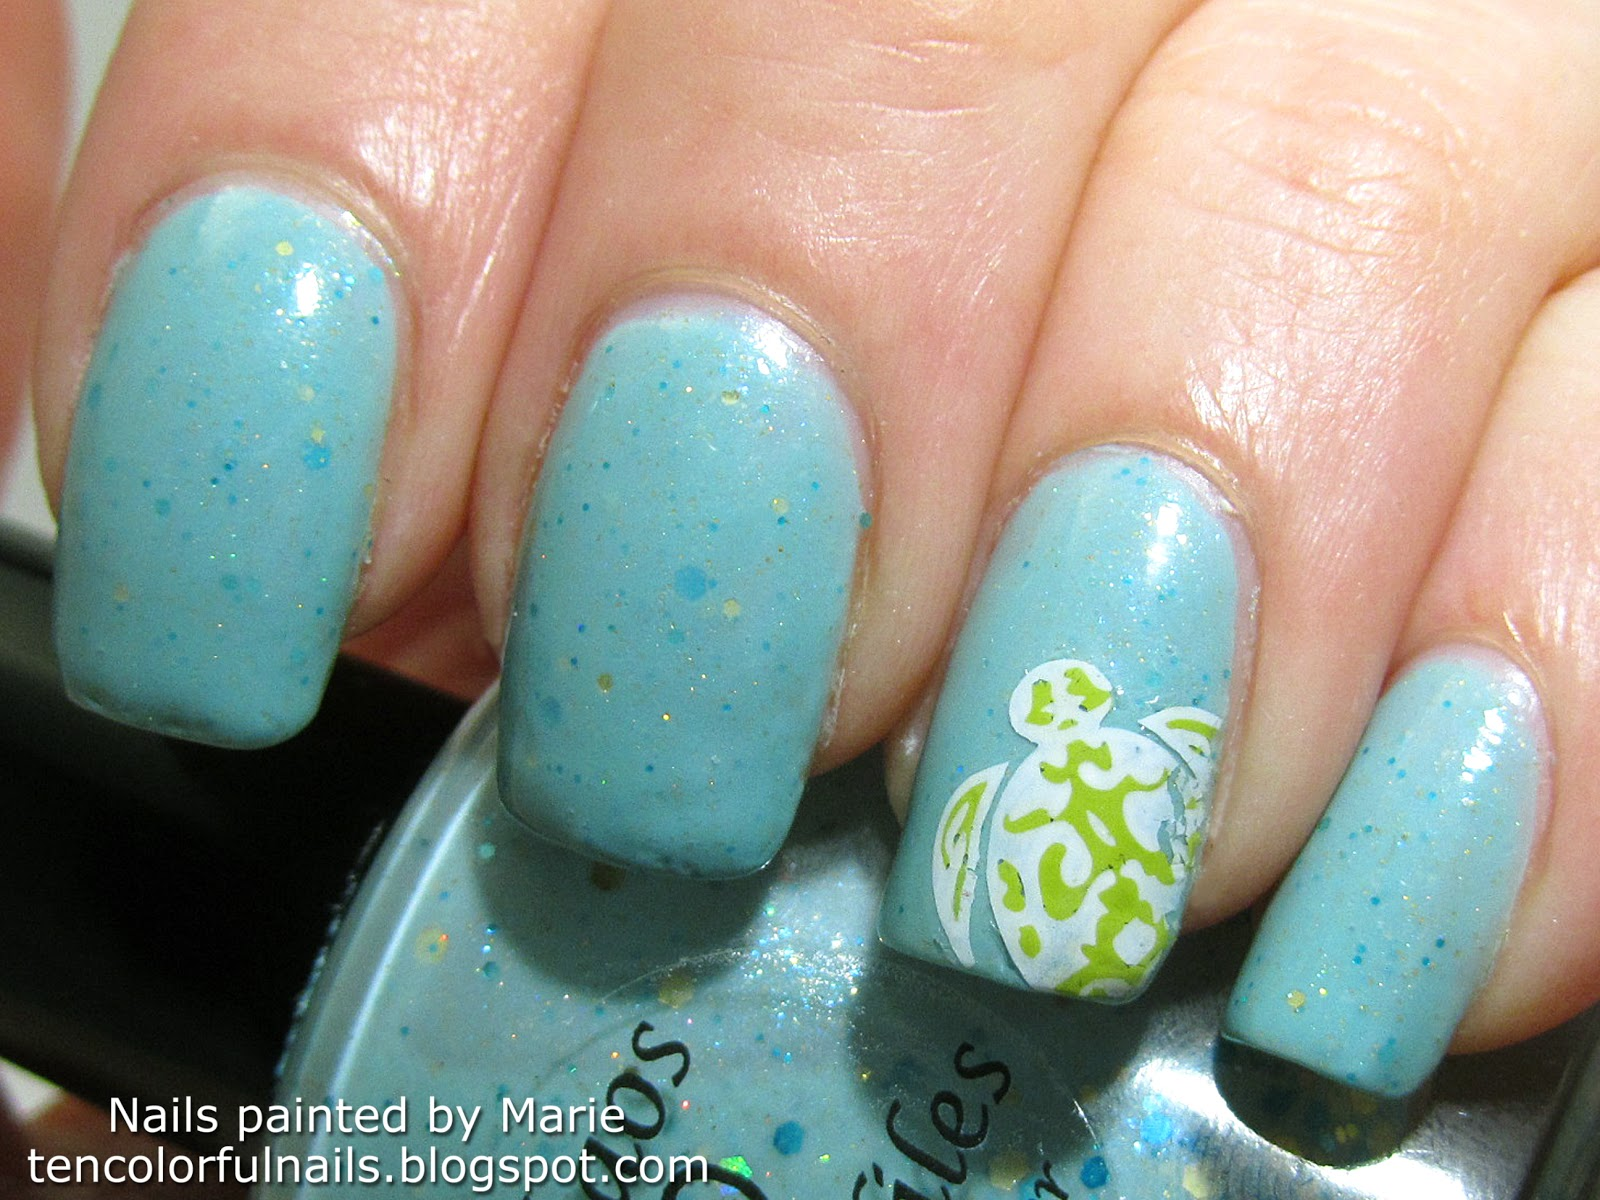 Ten Colorful Nails: Narwhals Are Unicorns Too swatch + stamped ...